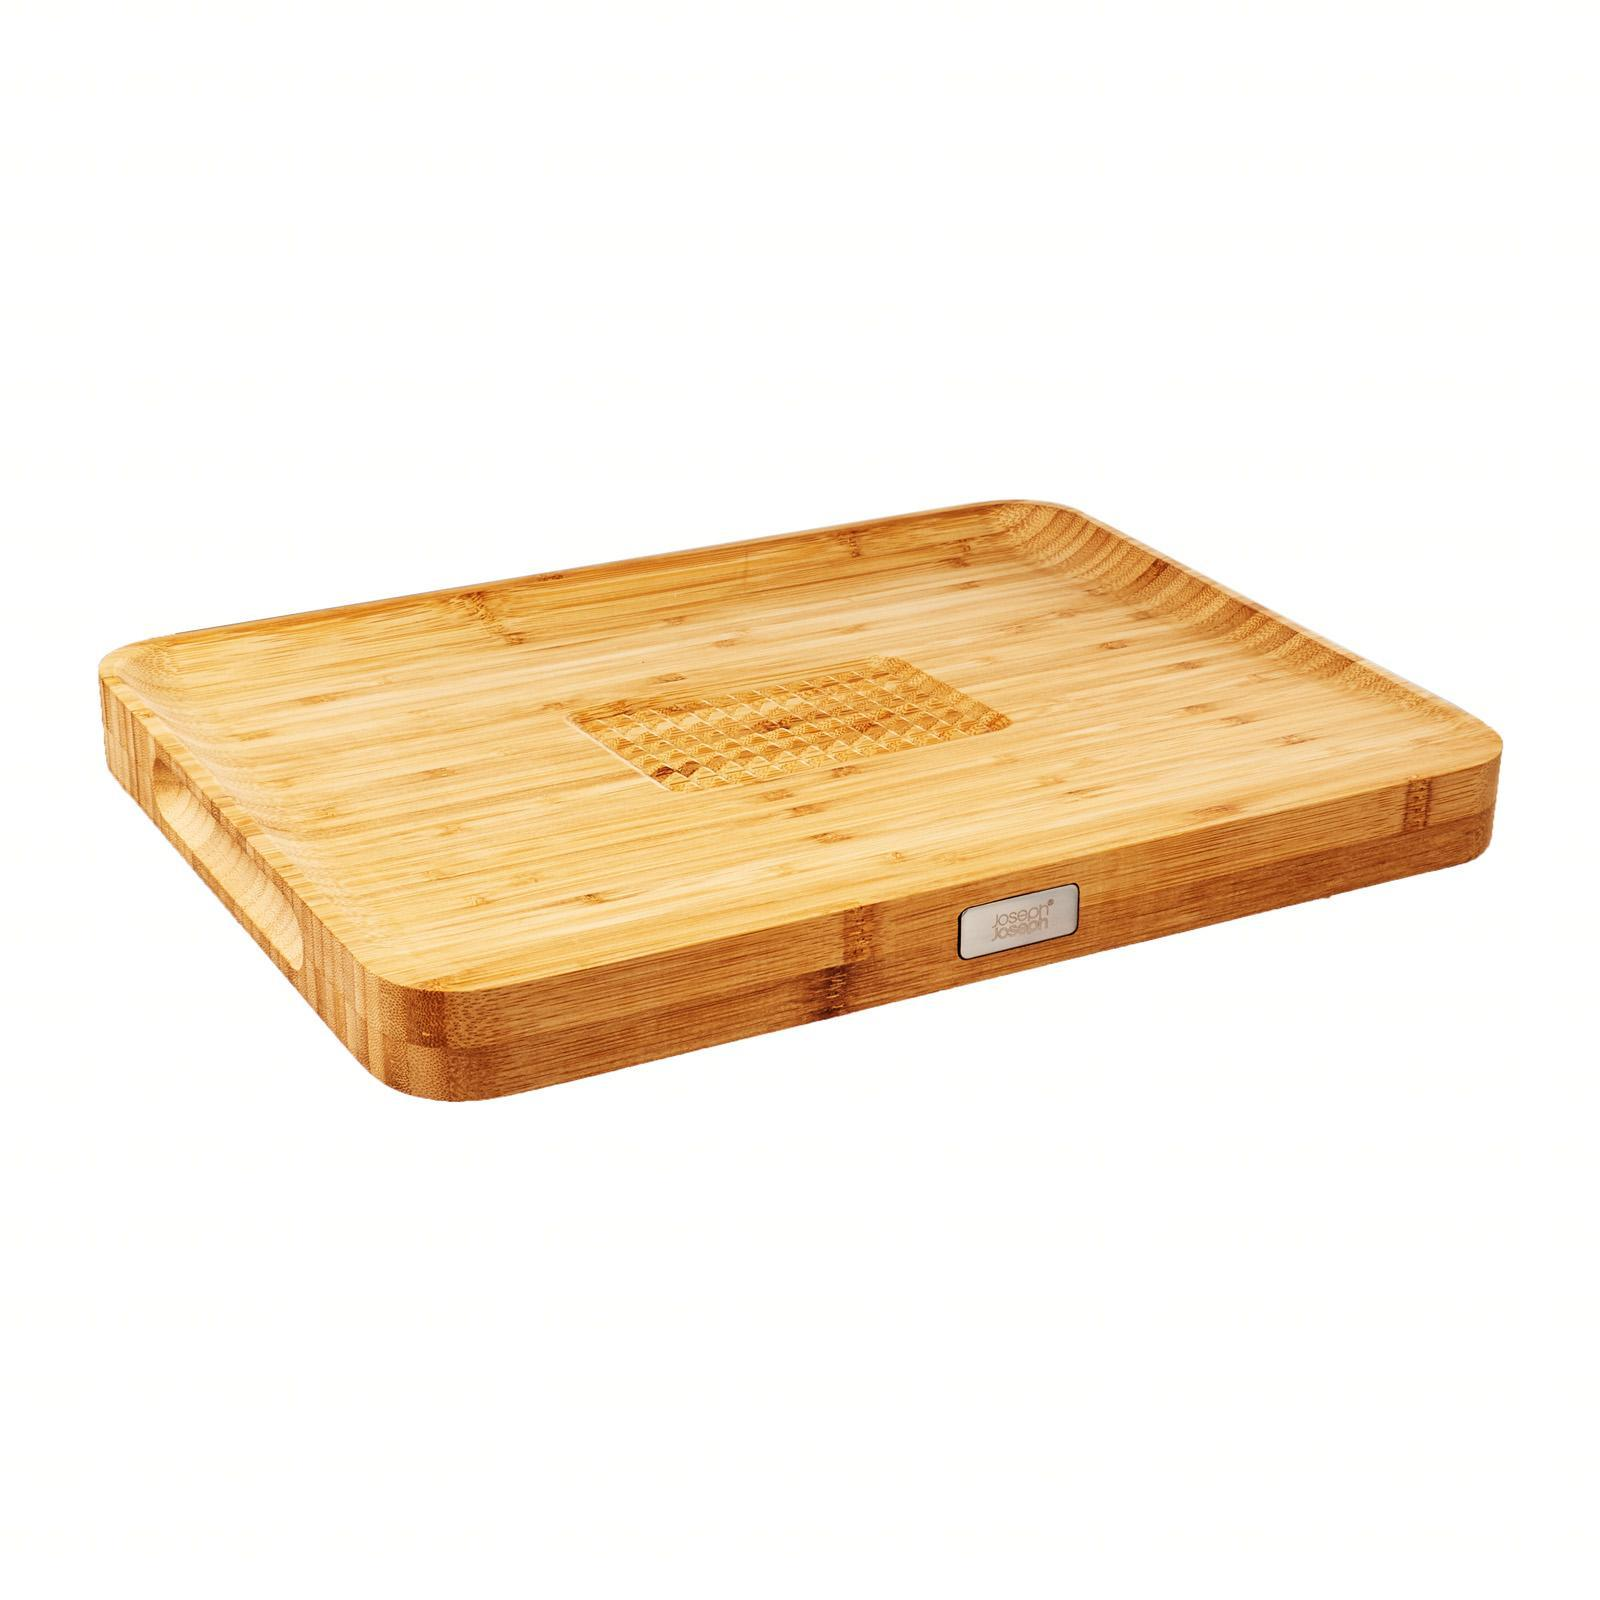 5a7d967bece3 Latest Joseph Joseph Preparation & Cutting Boards Products | Enjoy ...